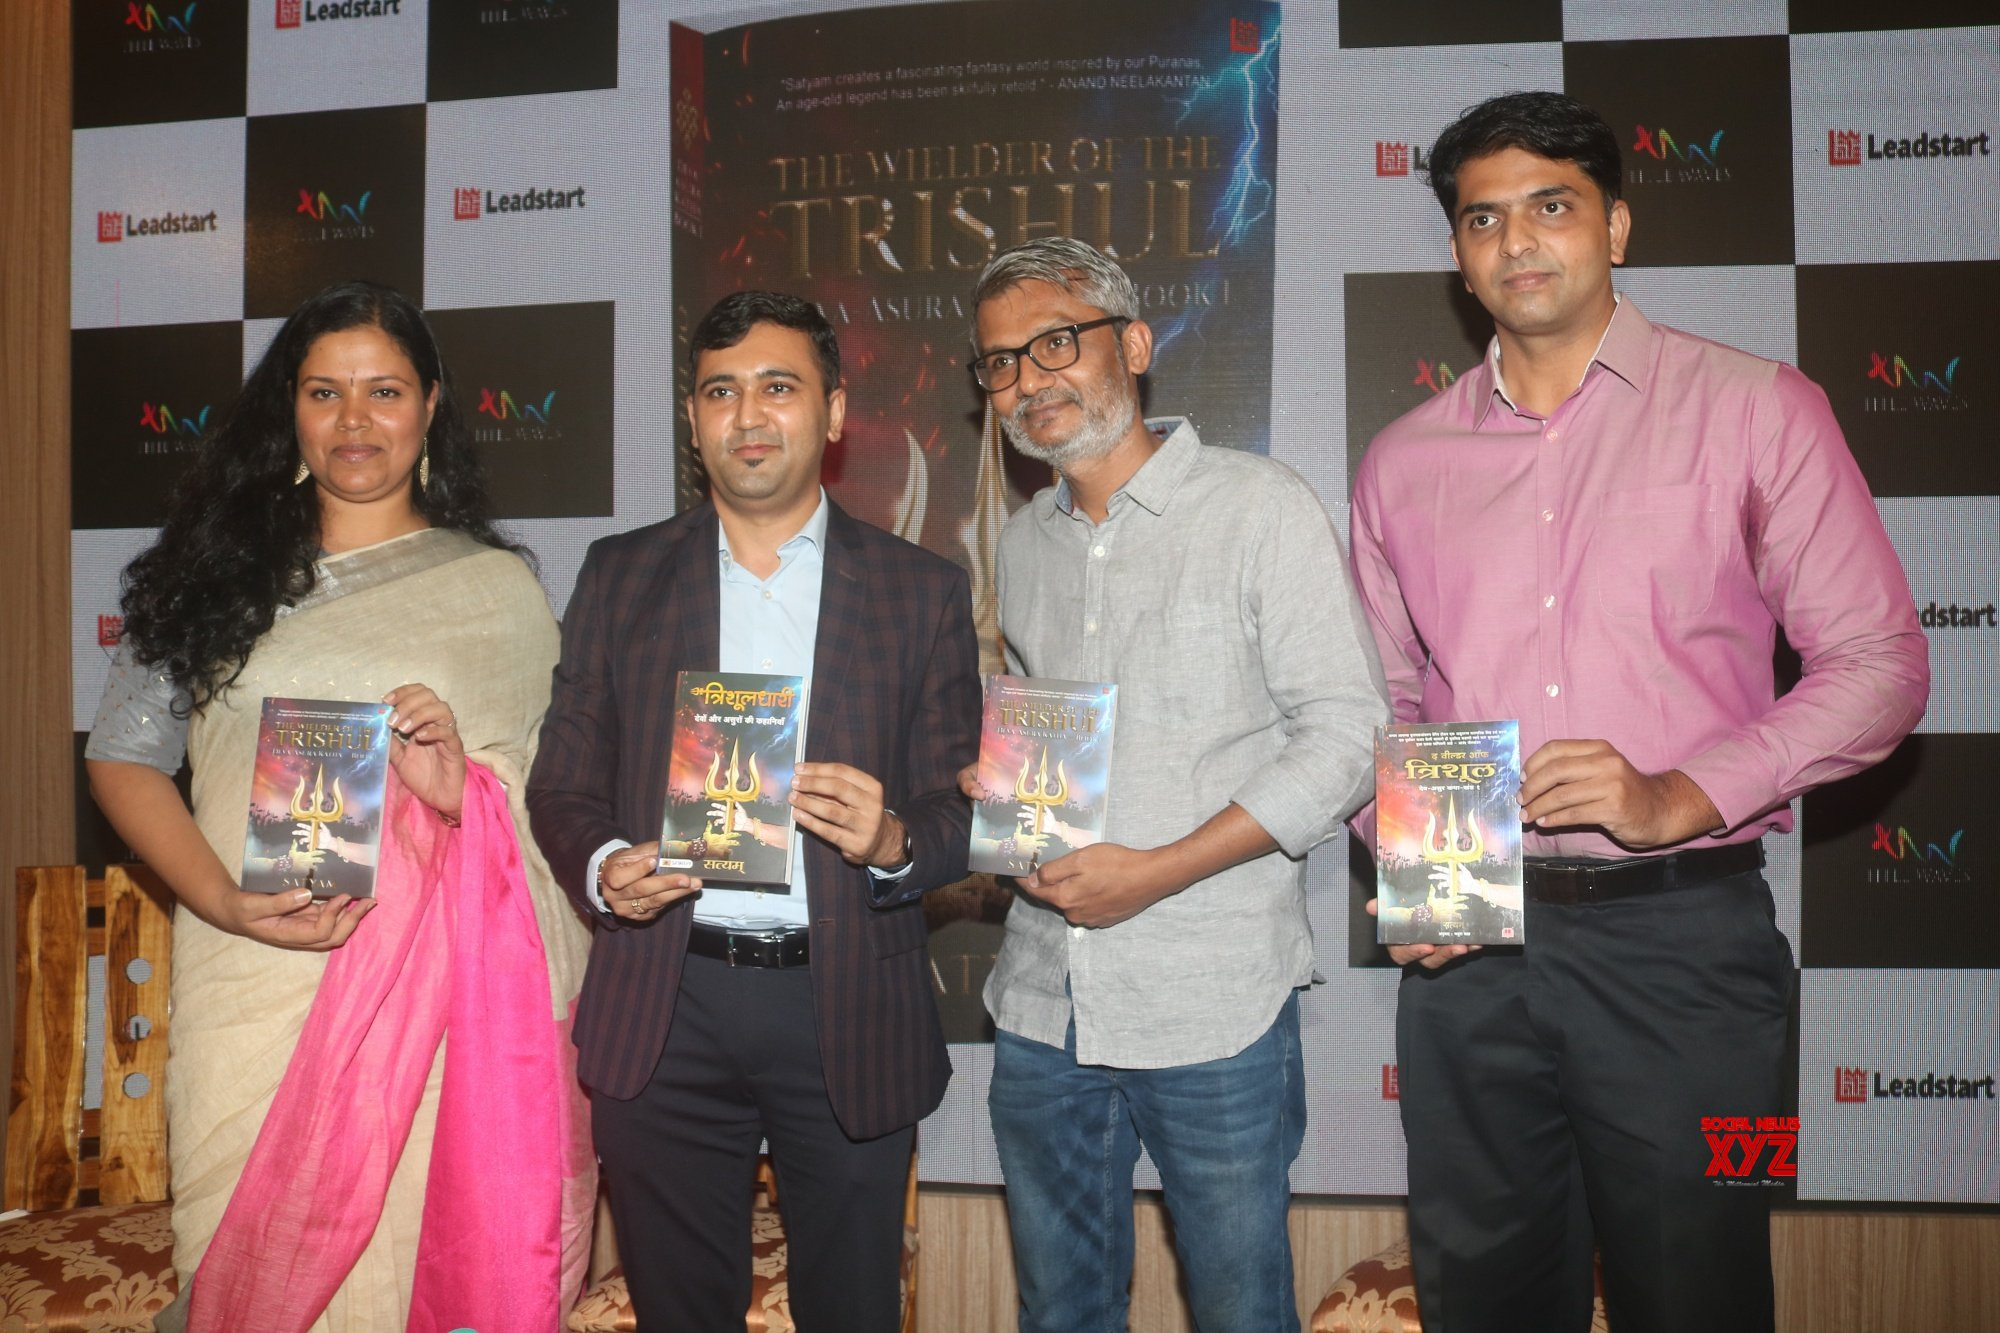 Author Satyam Srivastava Along With The Guest Of Honour Nitesh Tiwari At The Wielder Of The Trishul (TWOTT) Book Launch Gallery